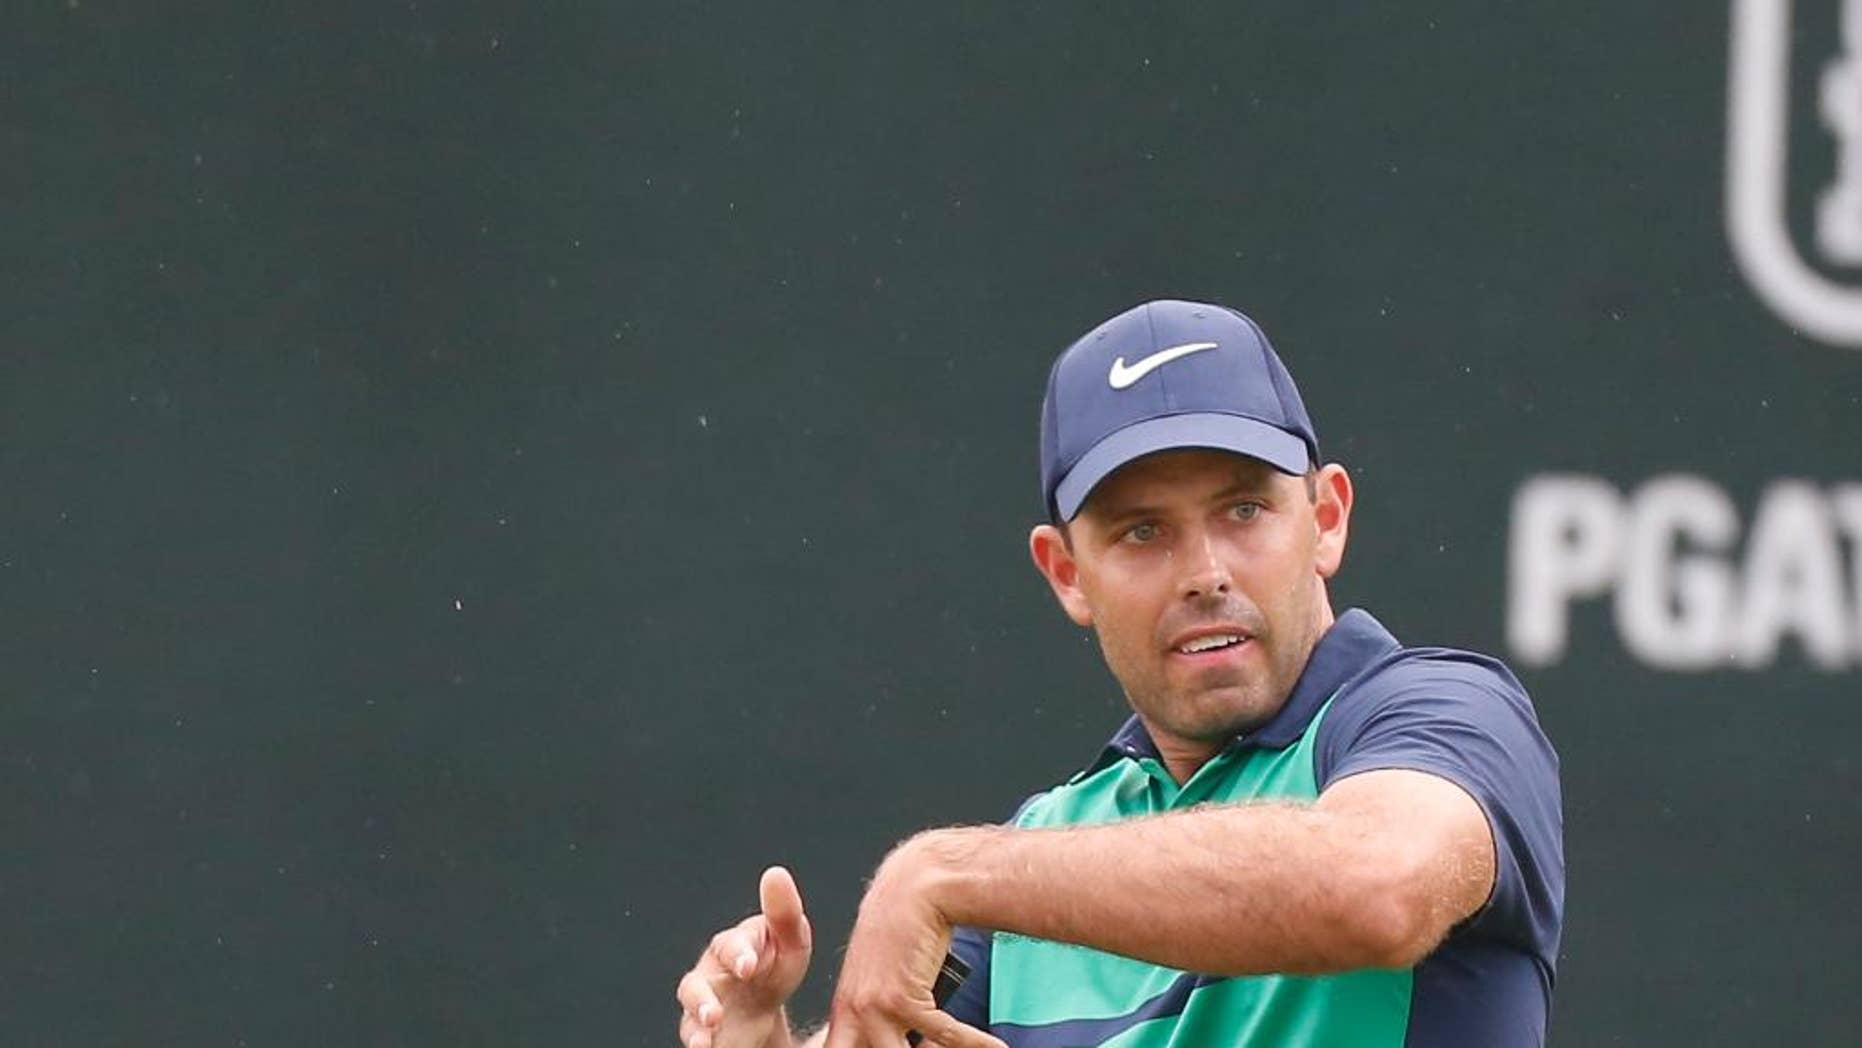 FILE - In this March 13, 2016, file photo, Charl Schwartzel, of South Africa, reacts as he misses his putt for birdie during regulation play on the 18th hole during the final round of the Valspar Championship golf tournament in Palm Harbor, Fla. Defending champion Charl Schwartzel has withdrawn from the Valspar Championship pro-am after 10 holes because of something that has never happened to him: He got hit by a golf ball. (AP Photo/Brian Blanco, File)